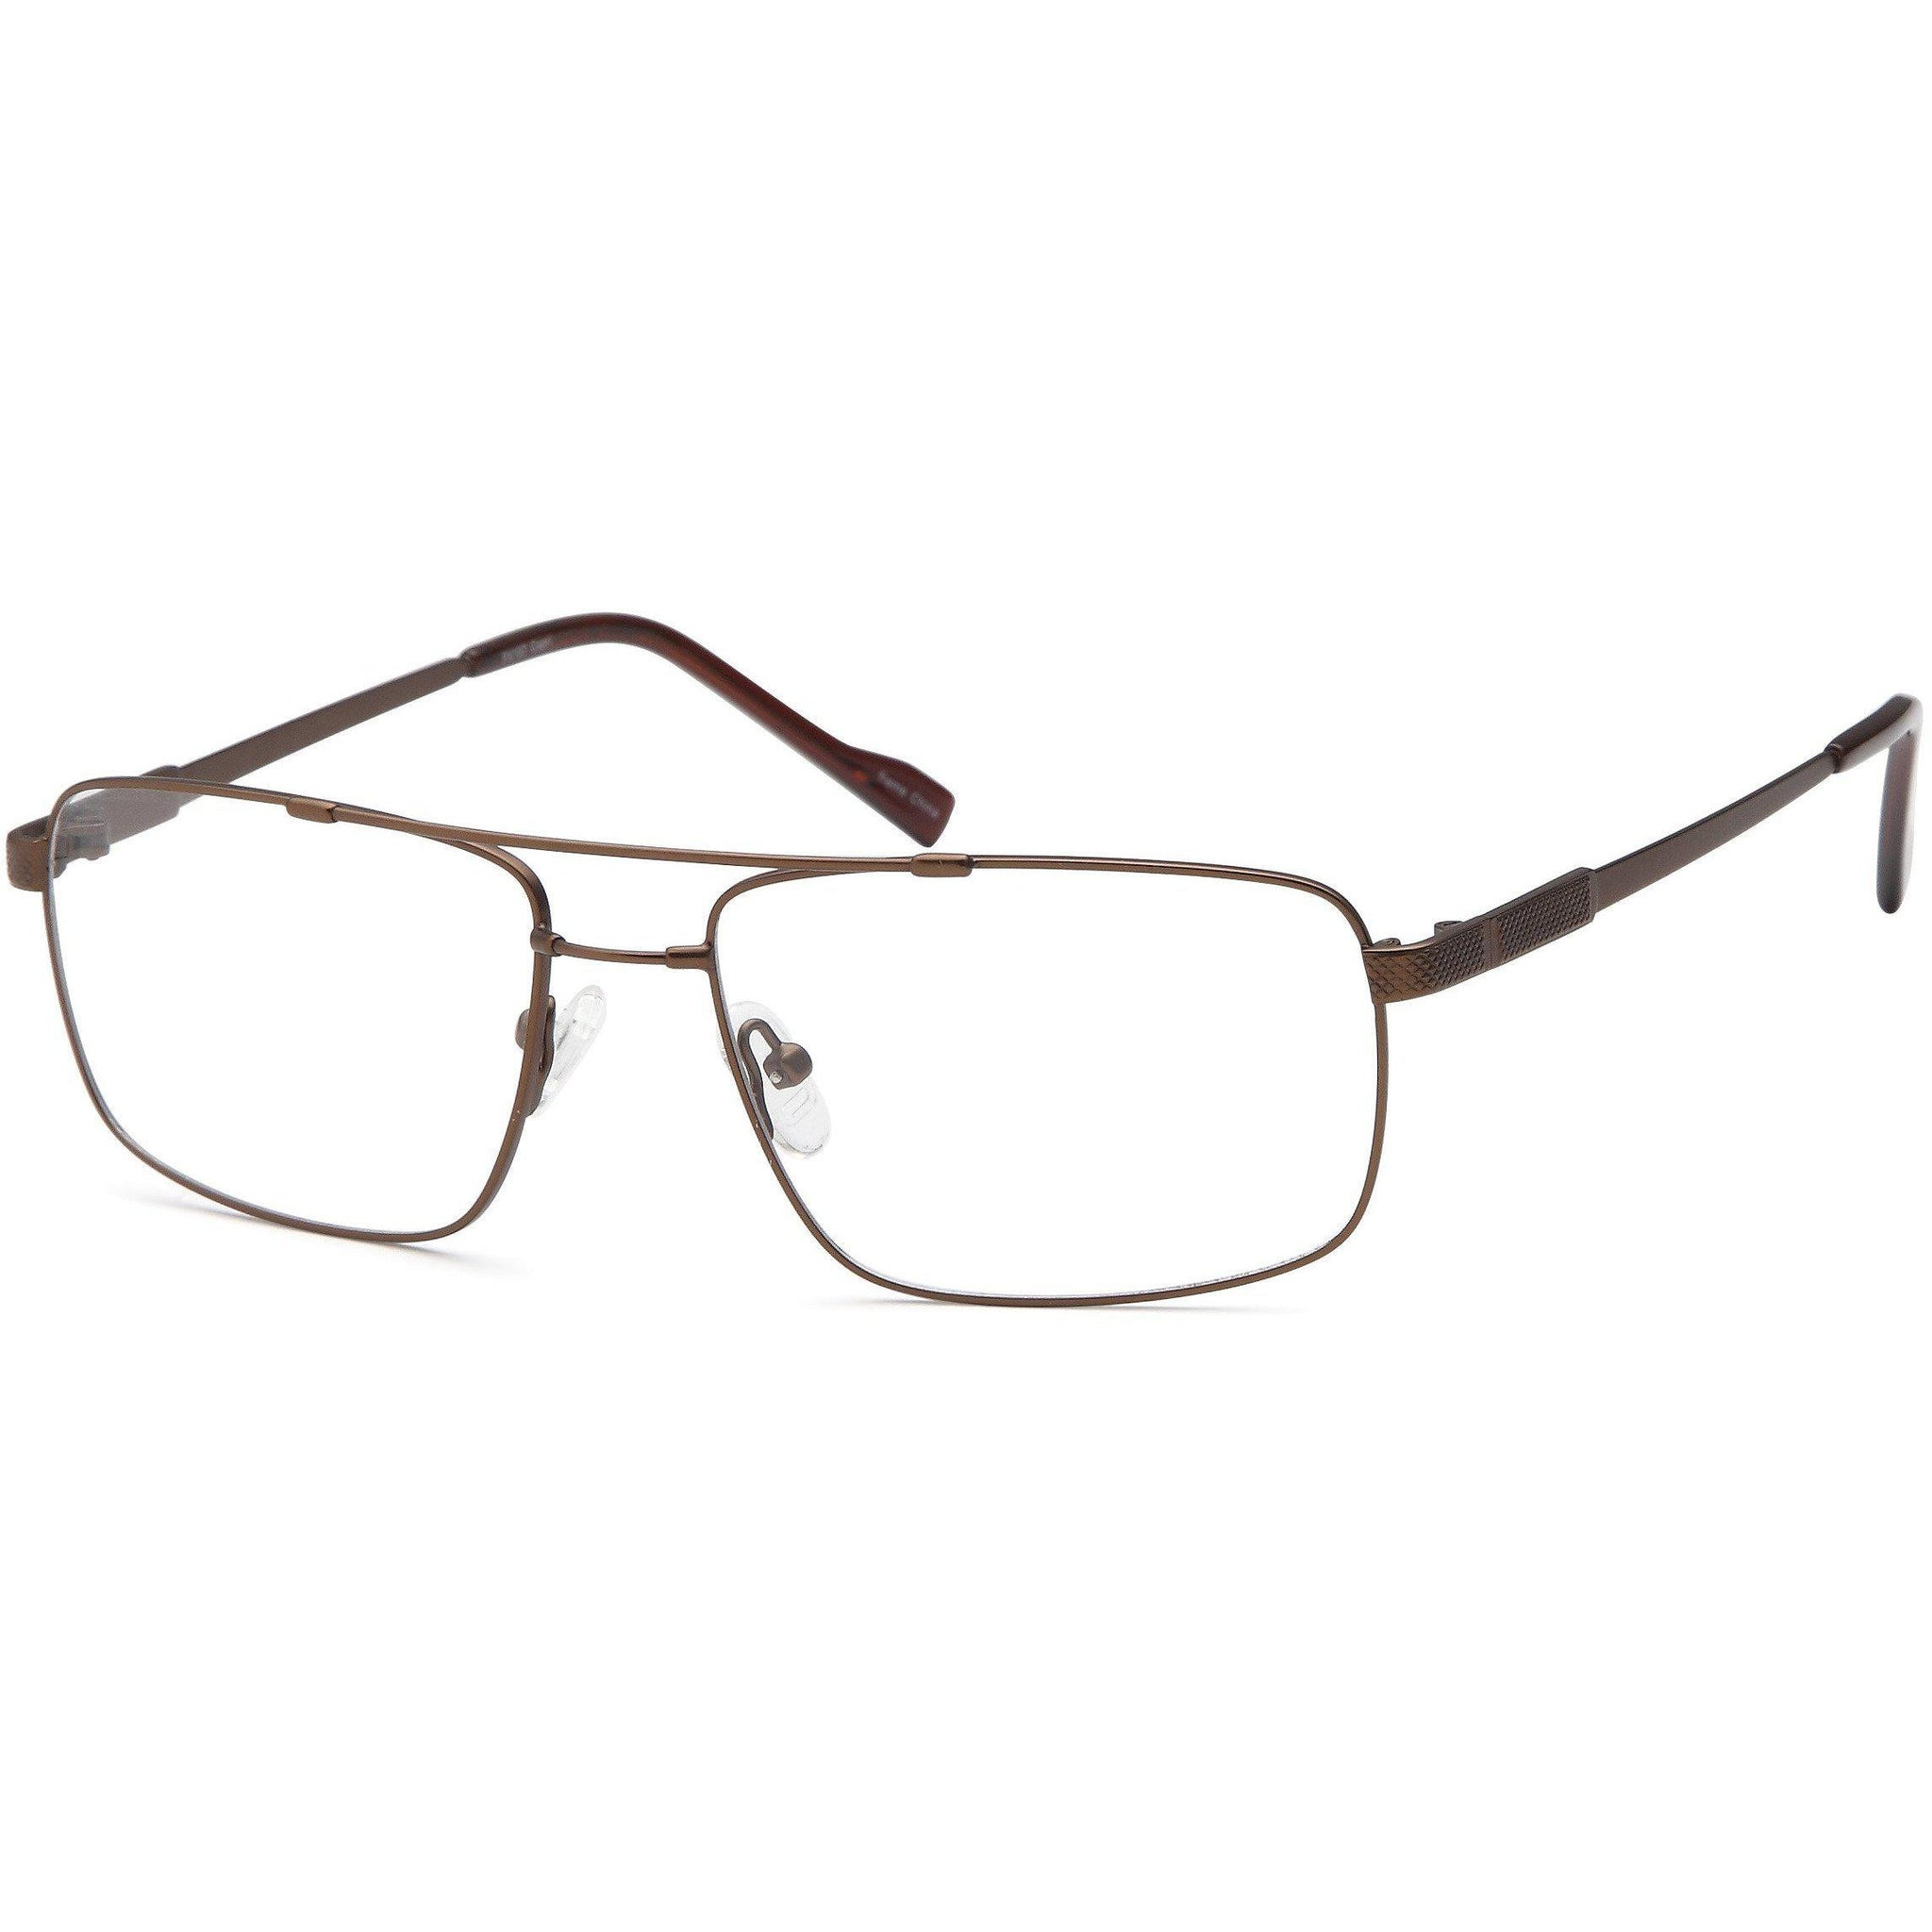 Titanium Prescription Glasses FX 107 Eyeglasses Frame